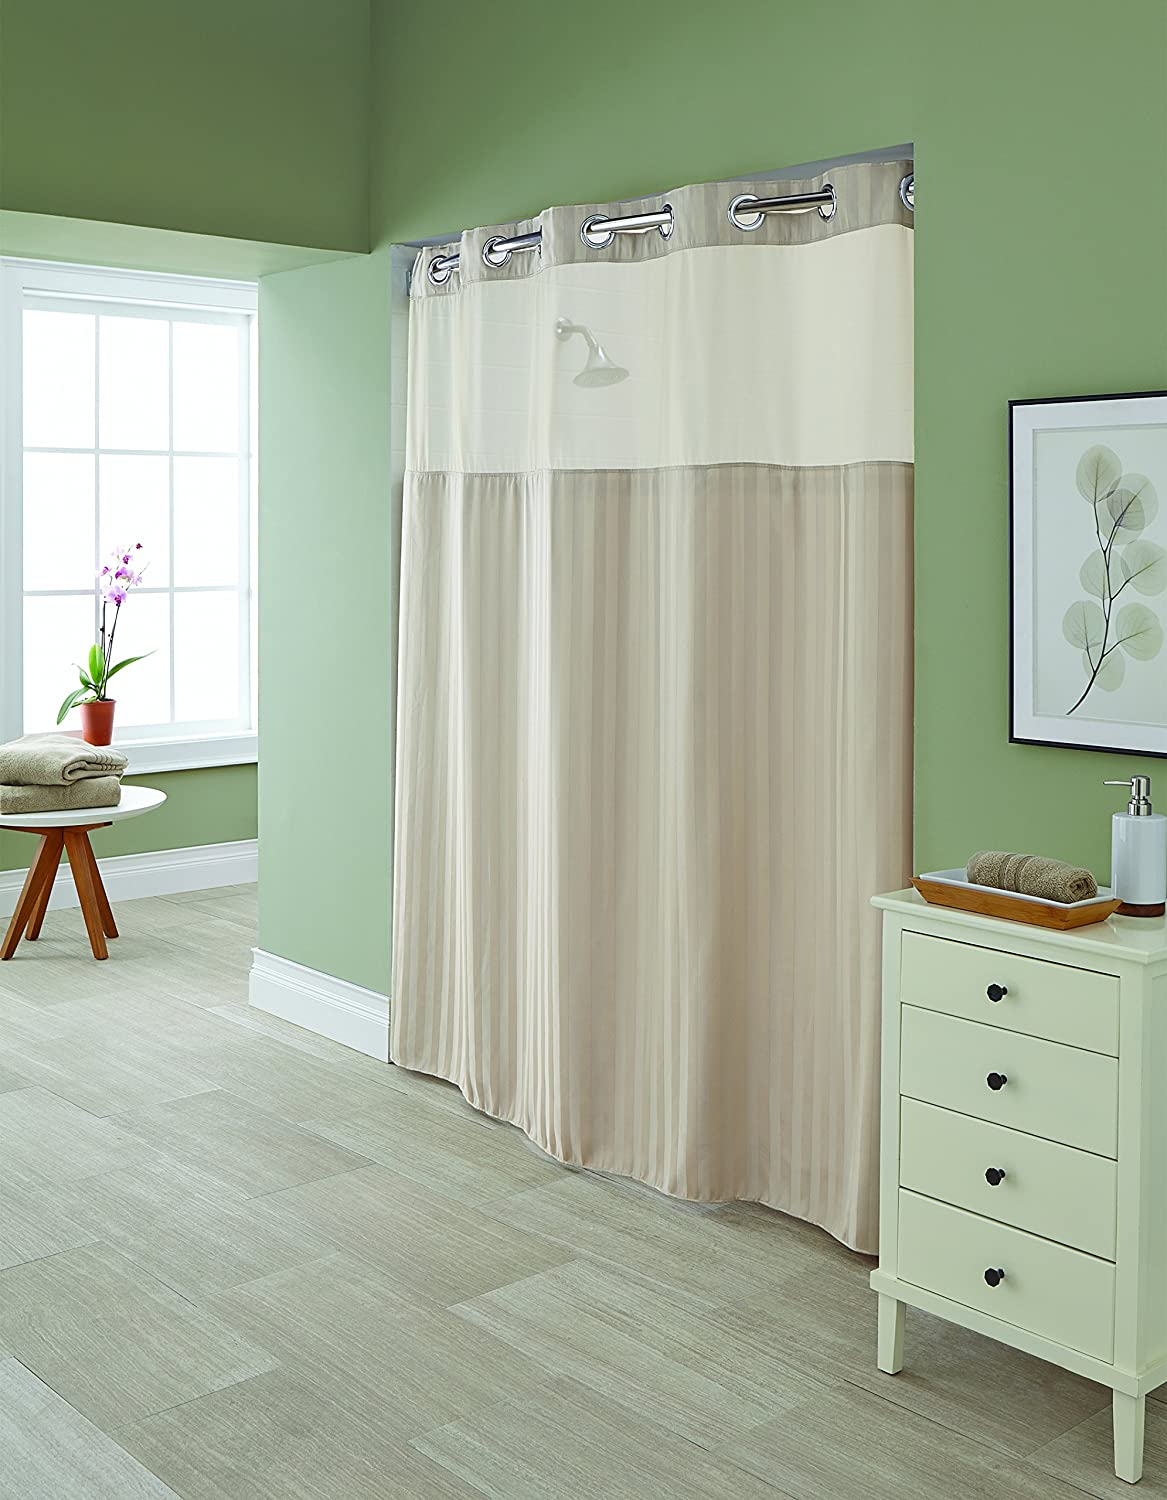 Hookless shower curtain with snap liner - Amazon Com Hookless Rbh94my983 Park Avenue Stripe Taupe Shower Curtain With Snap In Peva Liner Home Kitchen